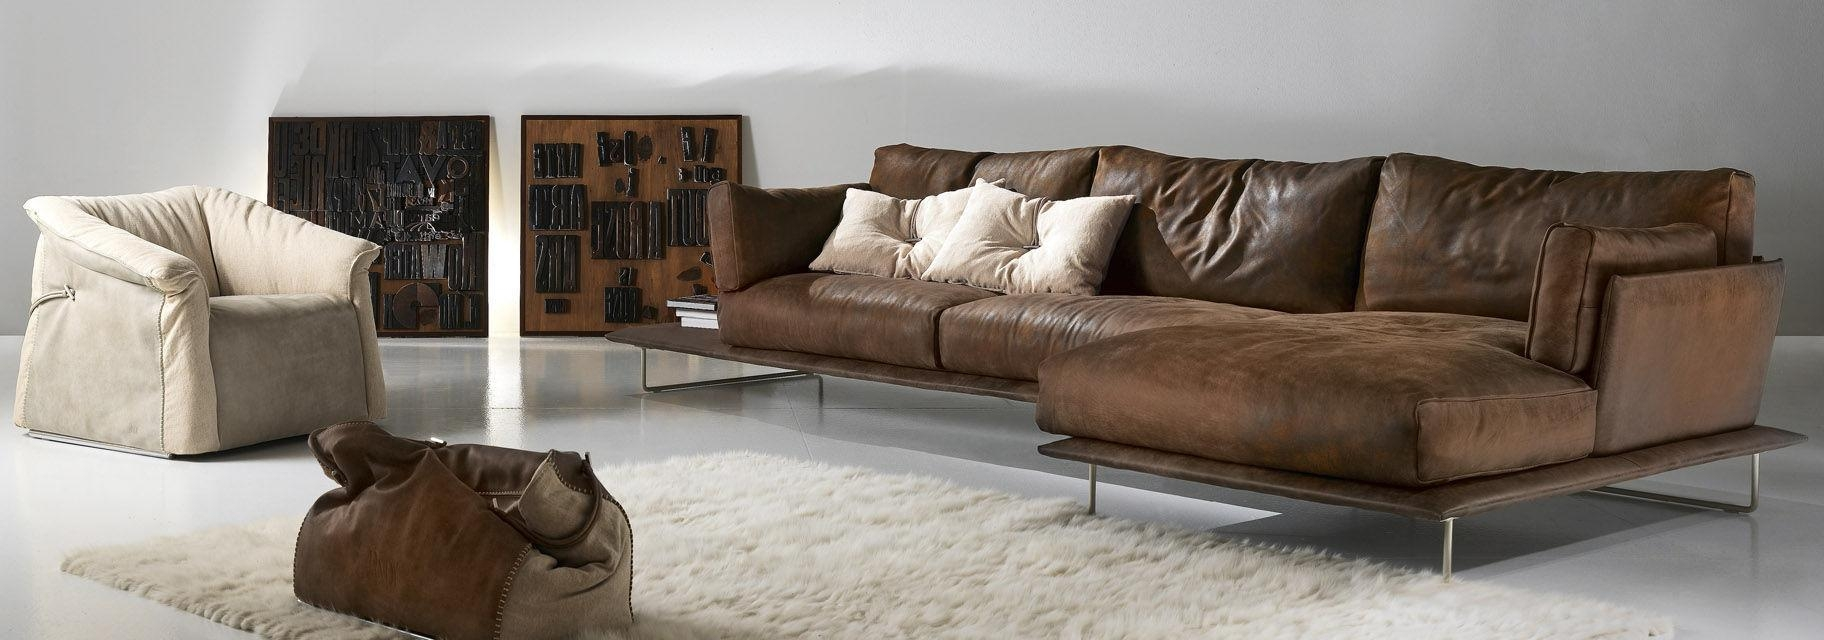 Sofas Center : Modular Sofa Contemporaryeather Fabric Time Break In Leather Sectional Austin (Image 15 of 20)